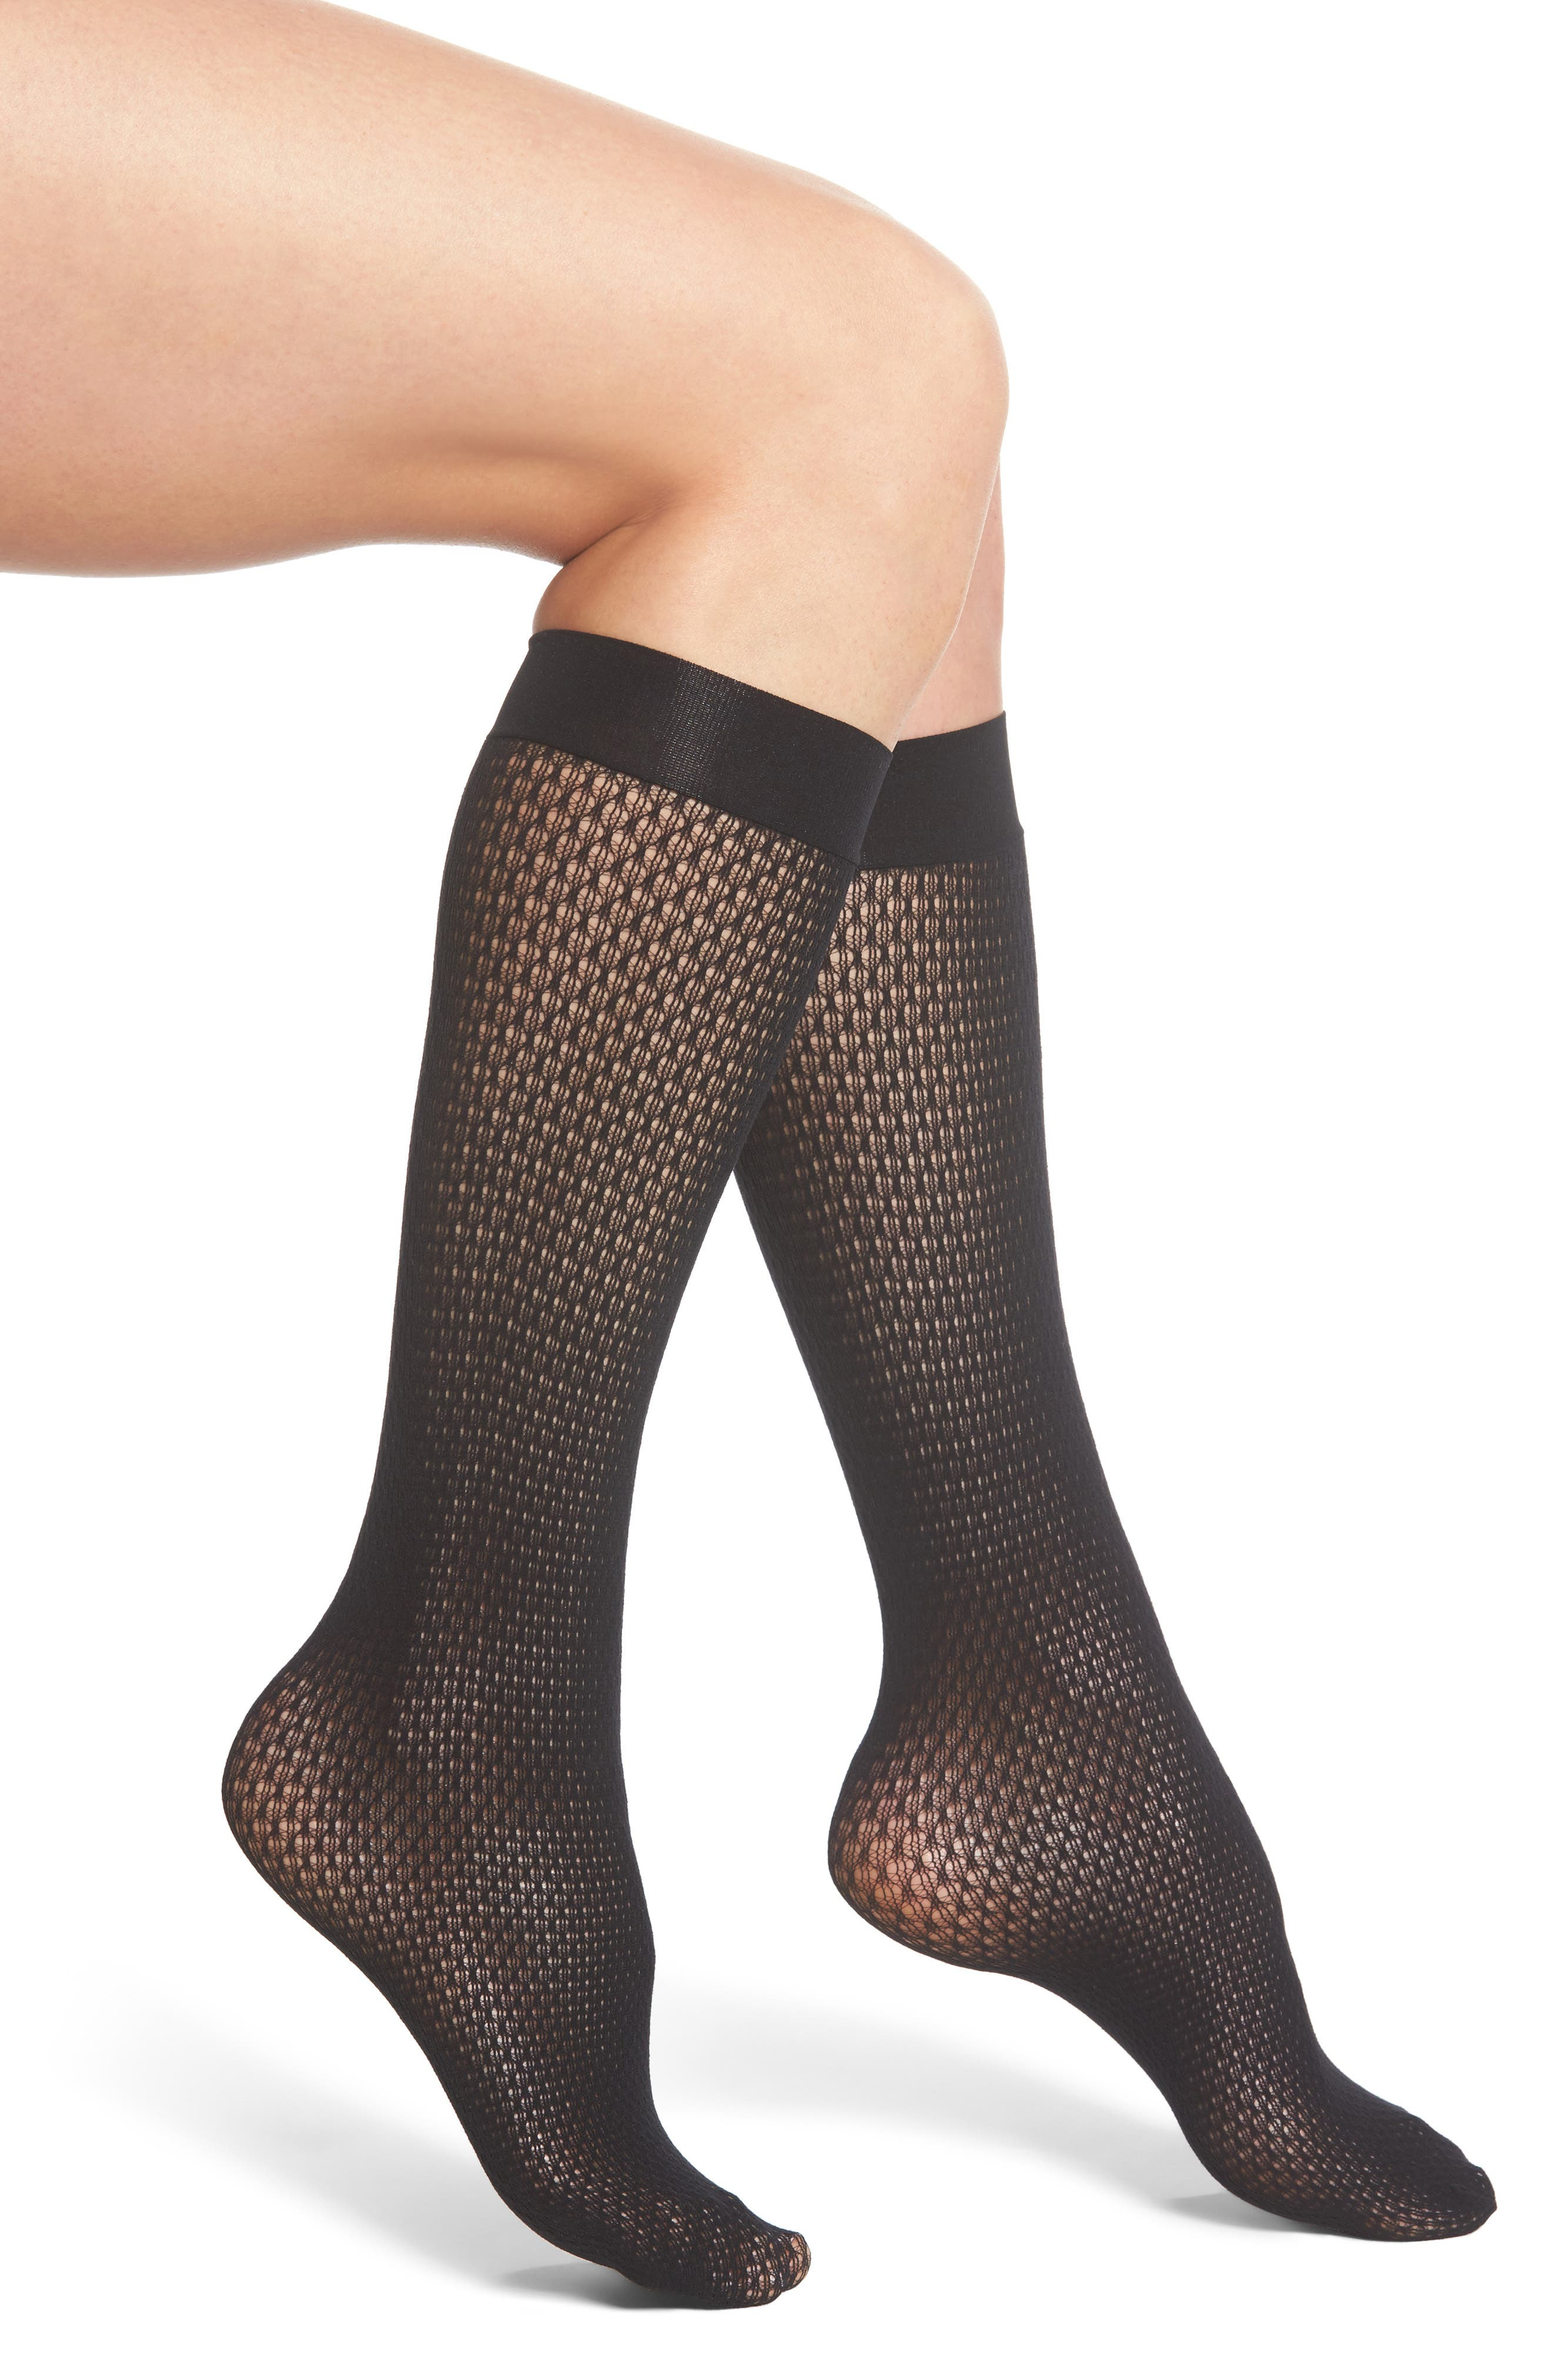 Wolford Rhomb Net Knee High Stockings